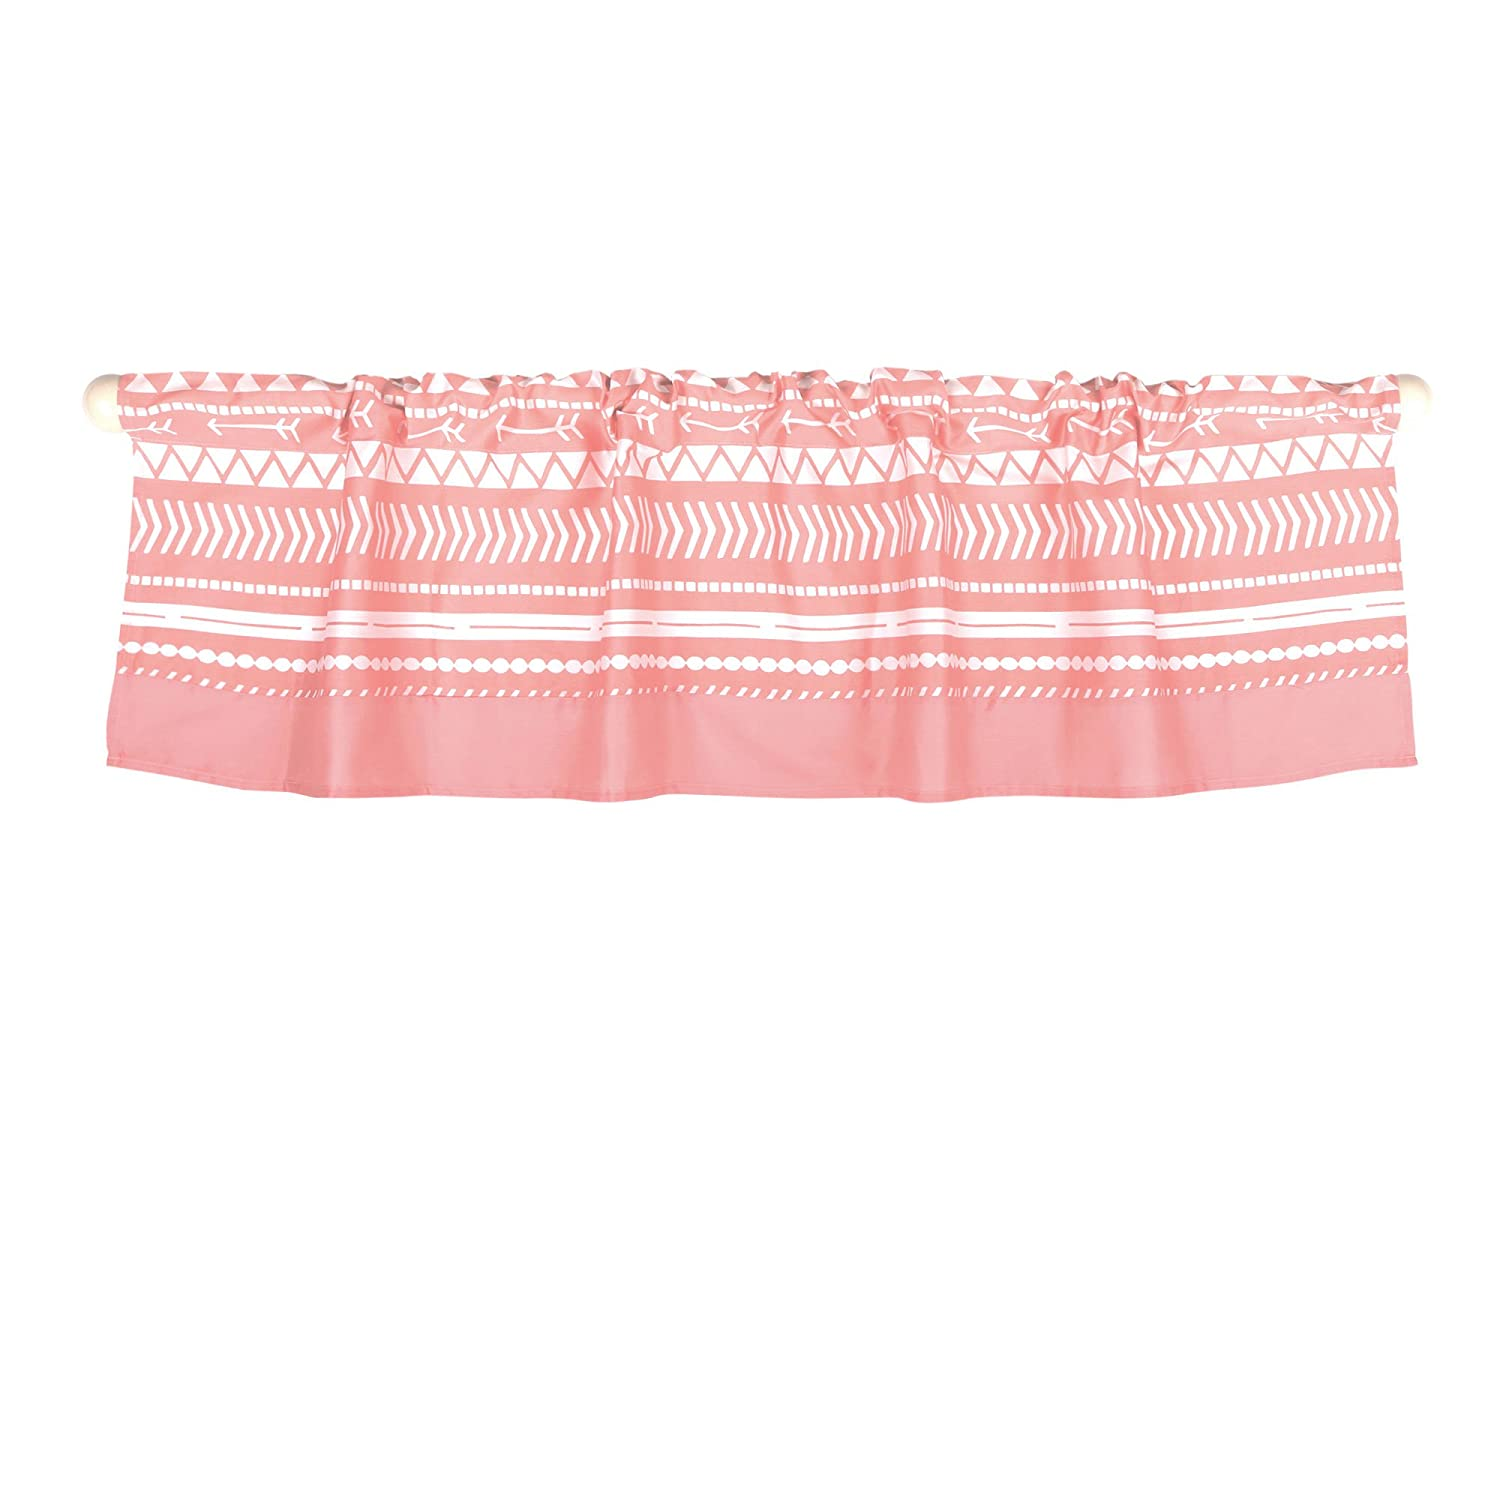 Coral Pink Tribal Print Window Valance by The Peanut Shell - 100% Cotton Sateen Farallon Brands WVTBCLCL